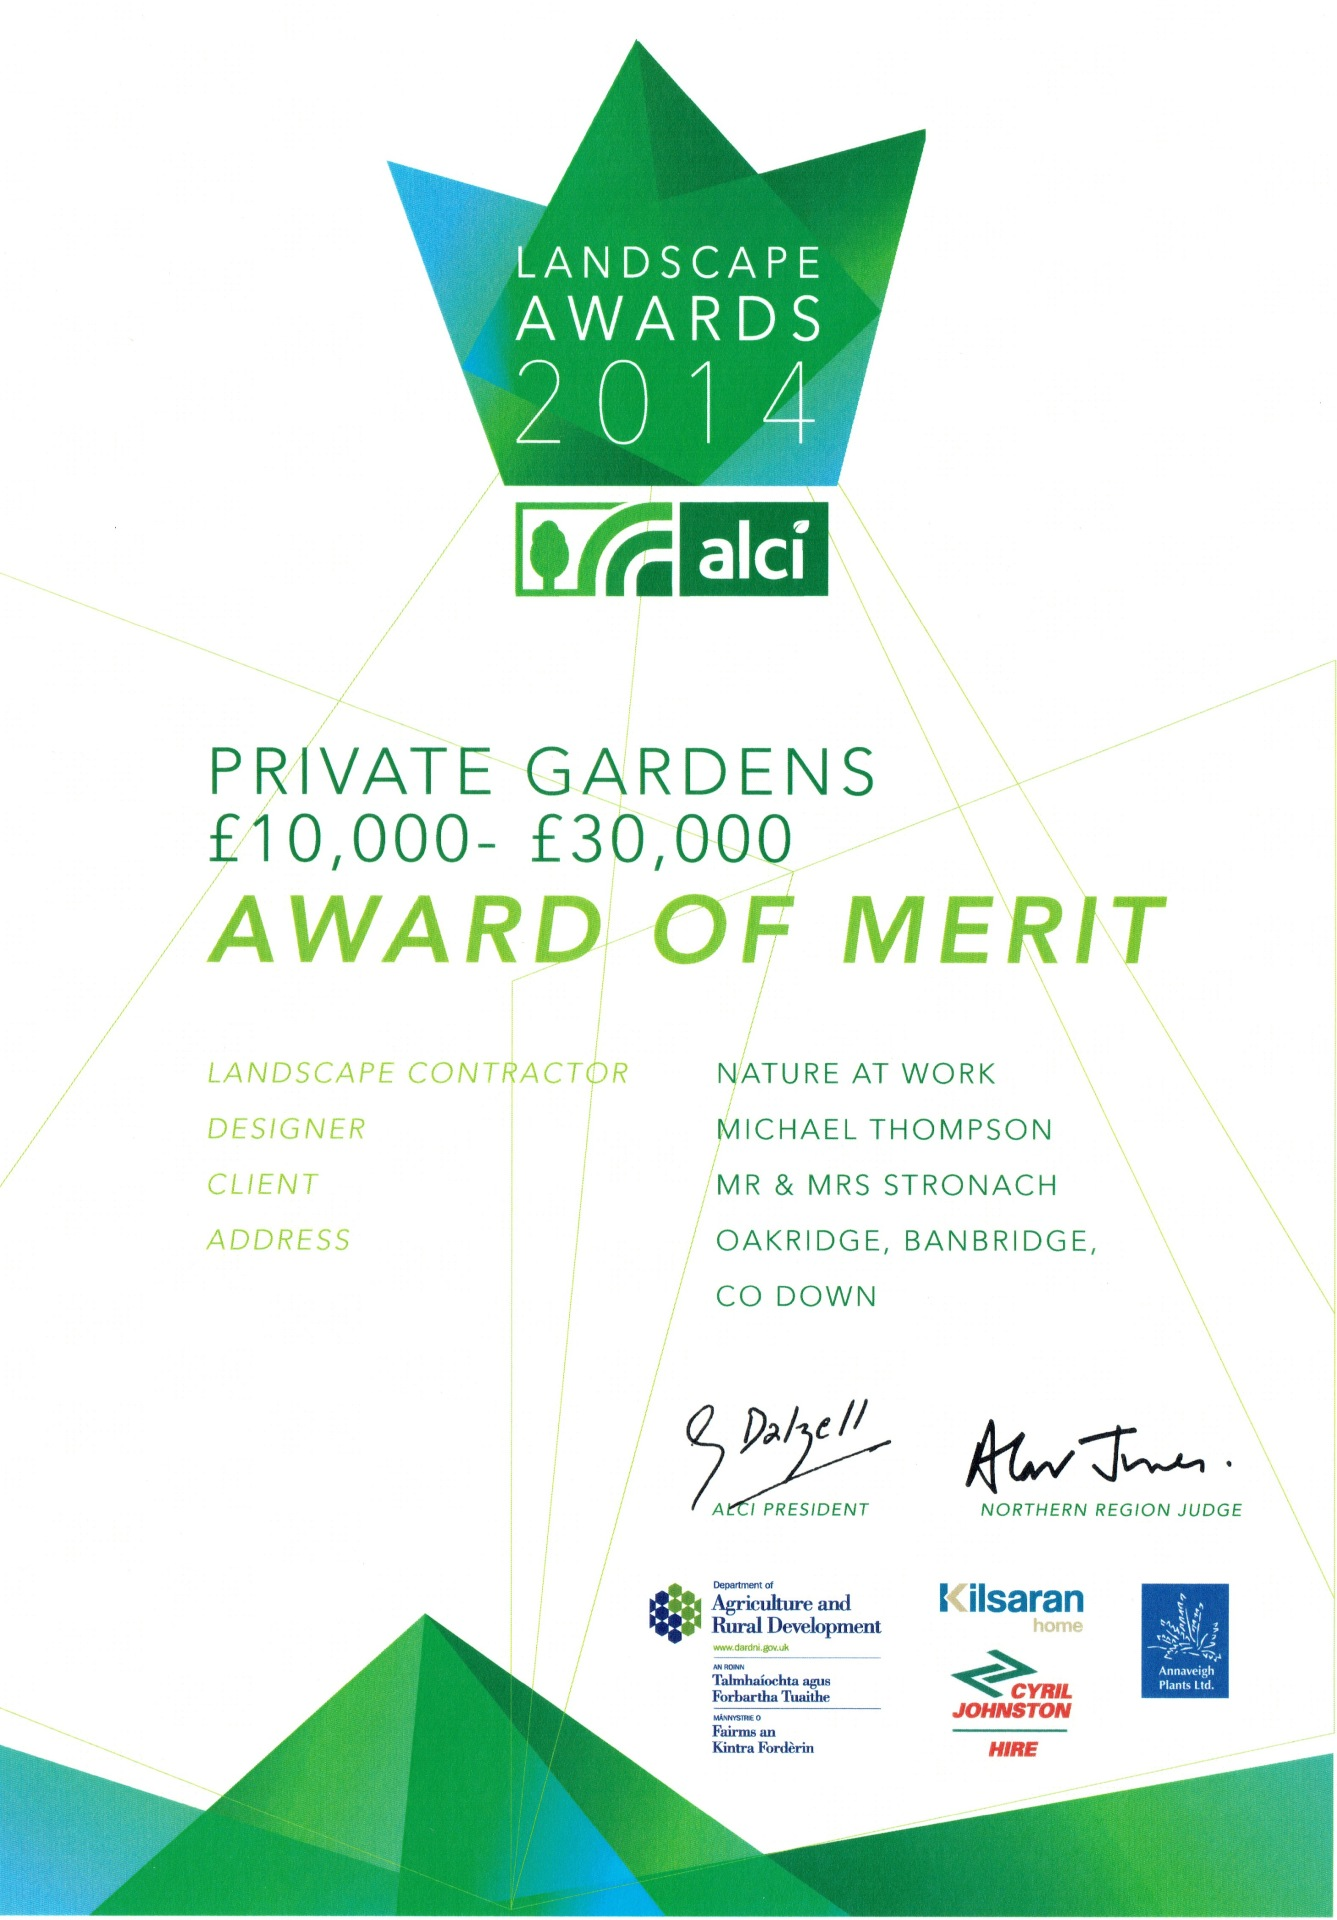 ALCI Landscape Awards 2014 Private Gardens £10,000- £30,000